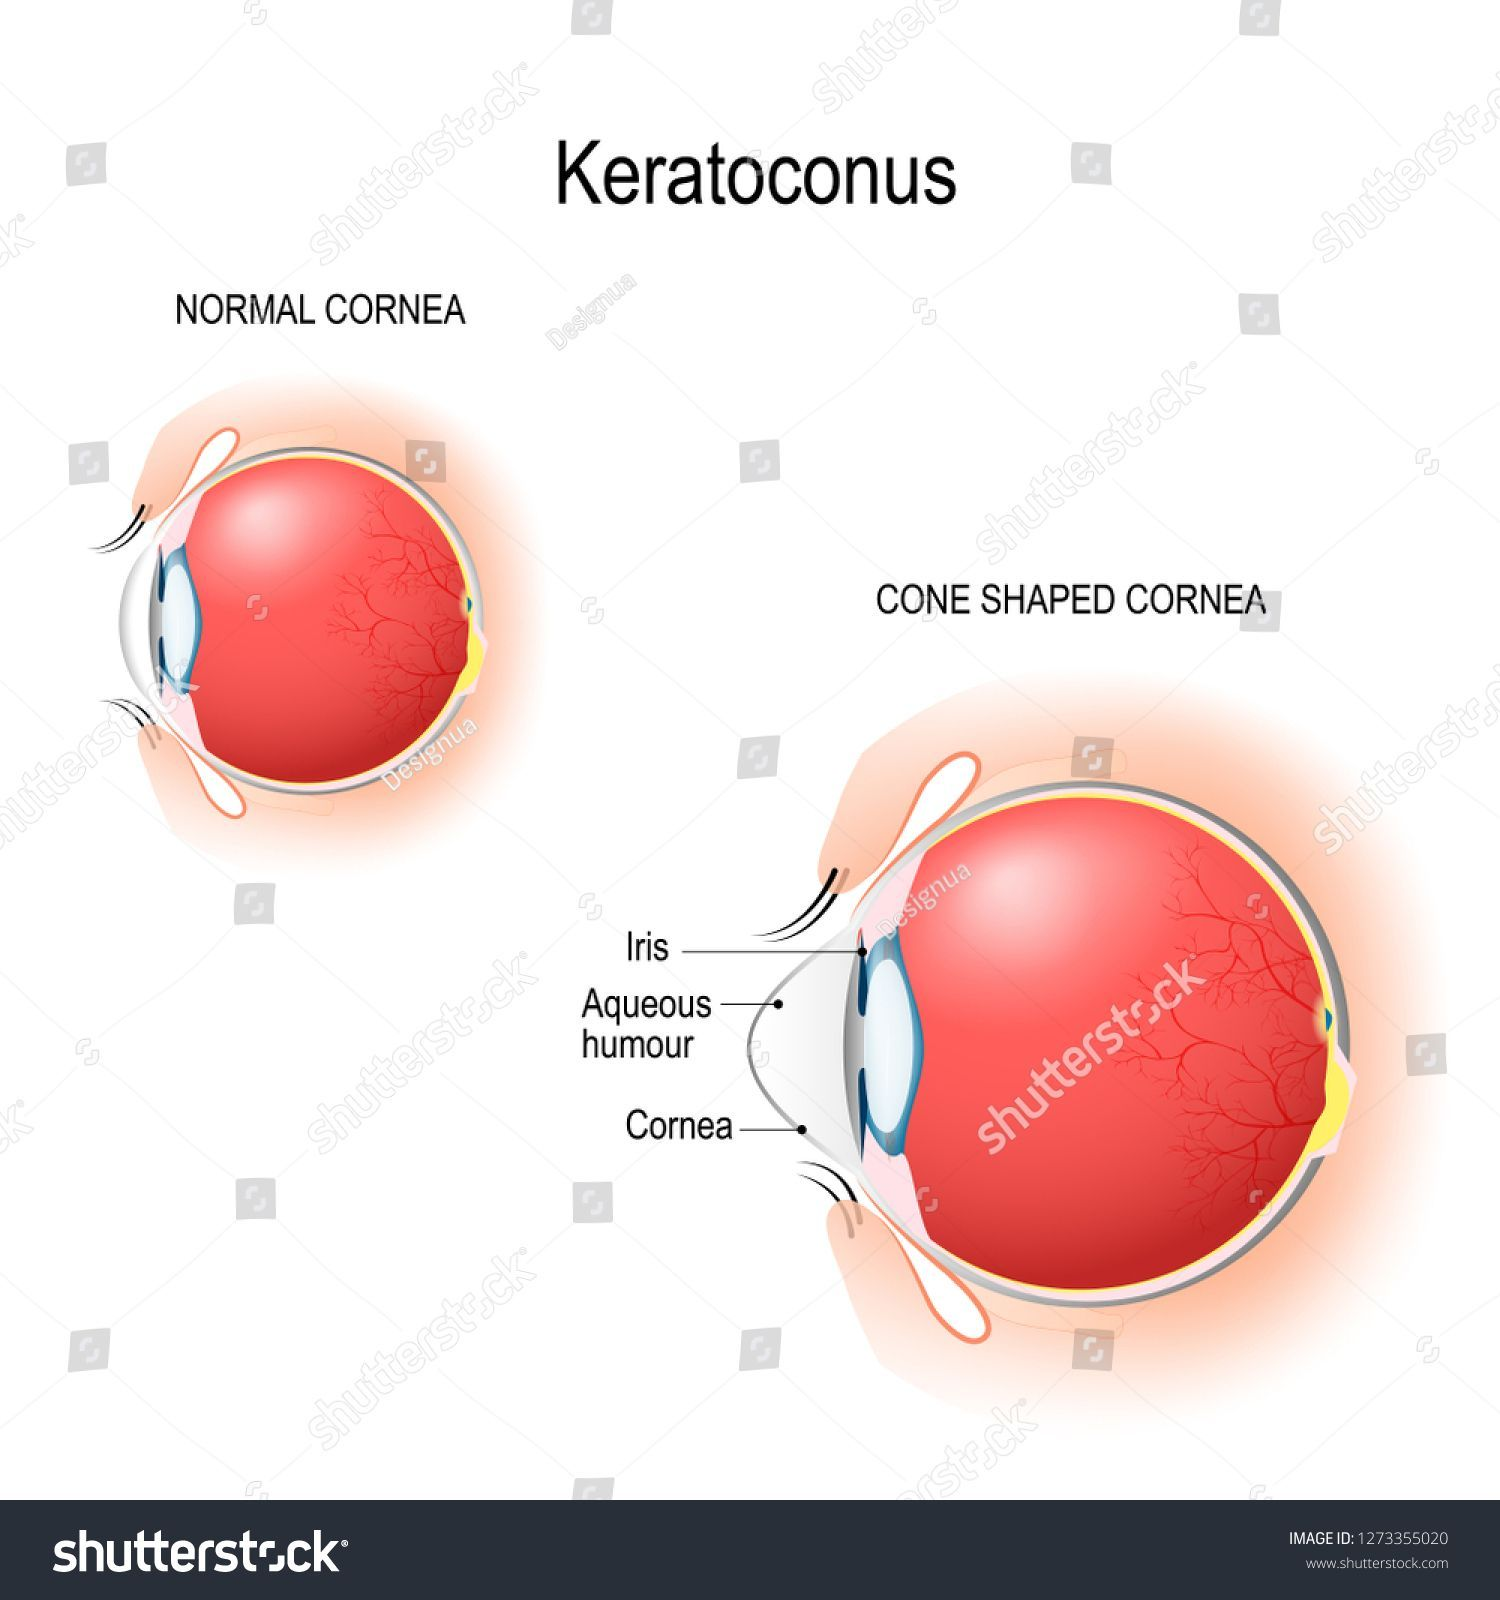 Keratoconus. Normal cornea and cone shaped cornea. Anatomy ... on cross section of the eye, flowchart of the eye, schematic eye retinoscopy, sagittal section of the eye, schematic section of the human eye, cutaway view of the eye, midsagittal section of the eye, transverse section of the eye, cross section diagram of eye,